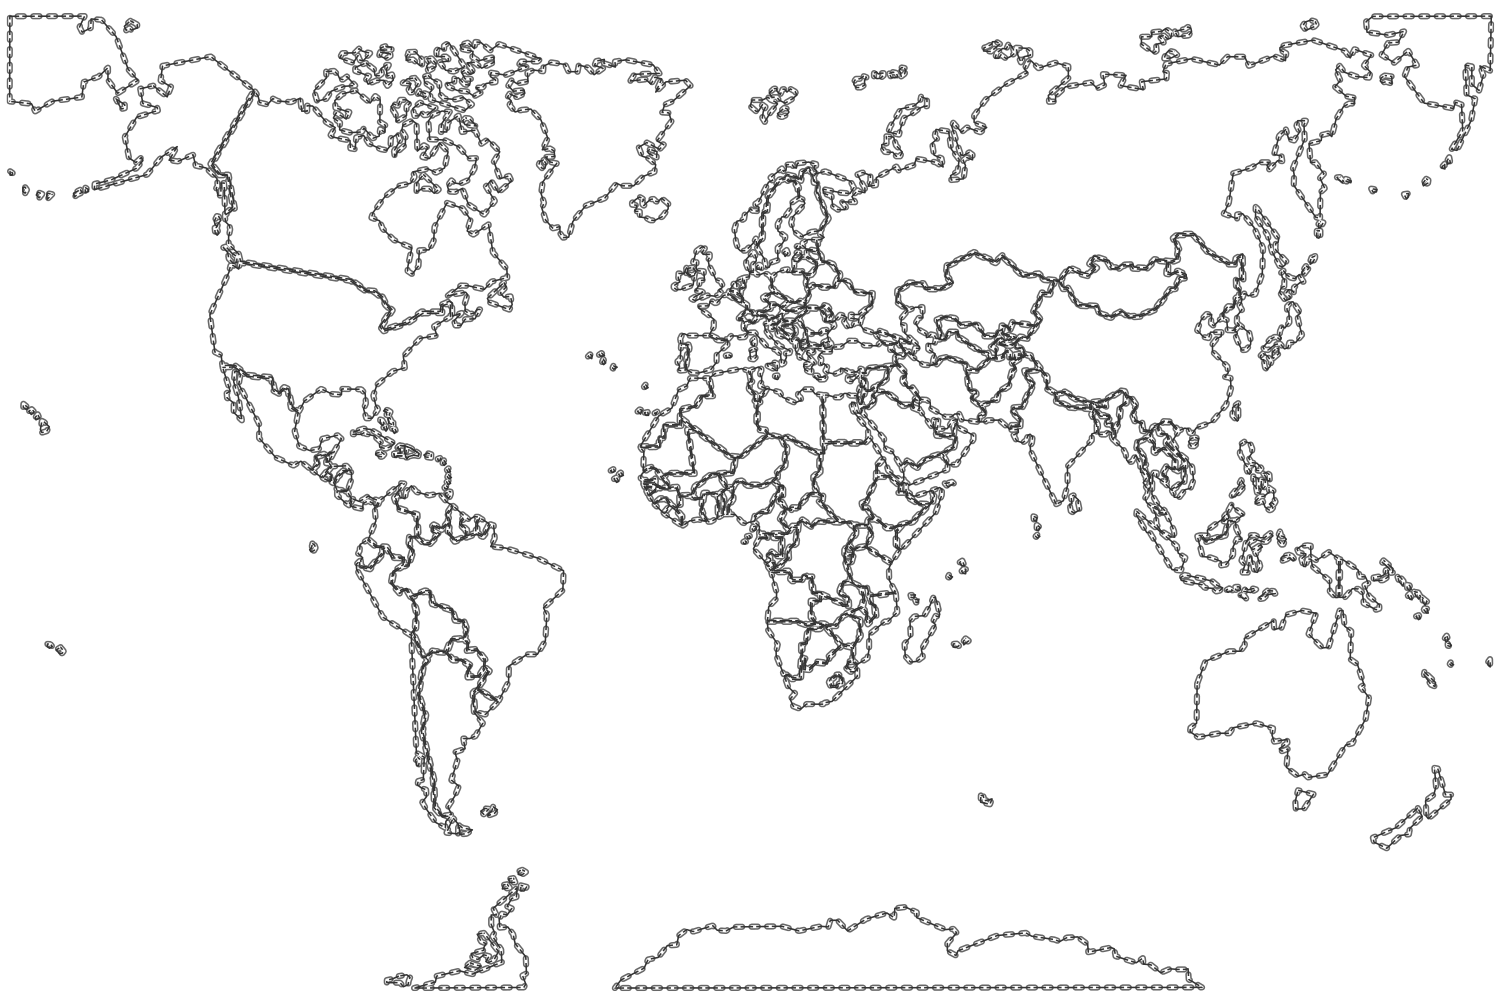 Map Of The World Without Countries Labeled